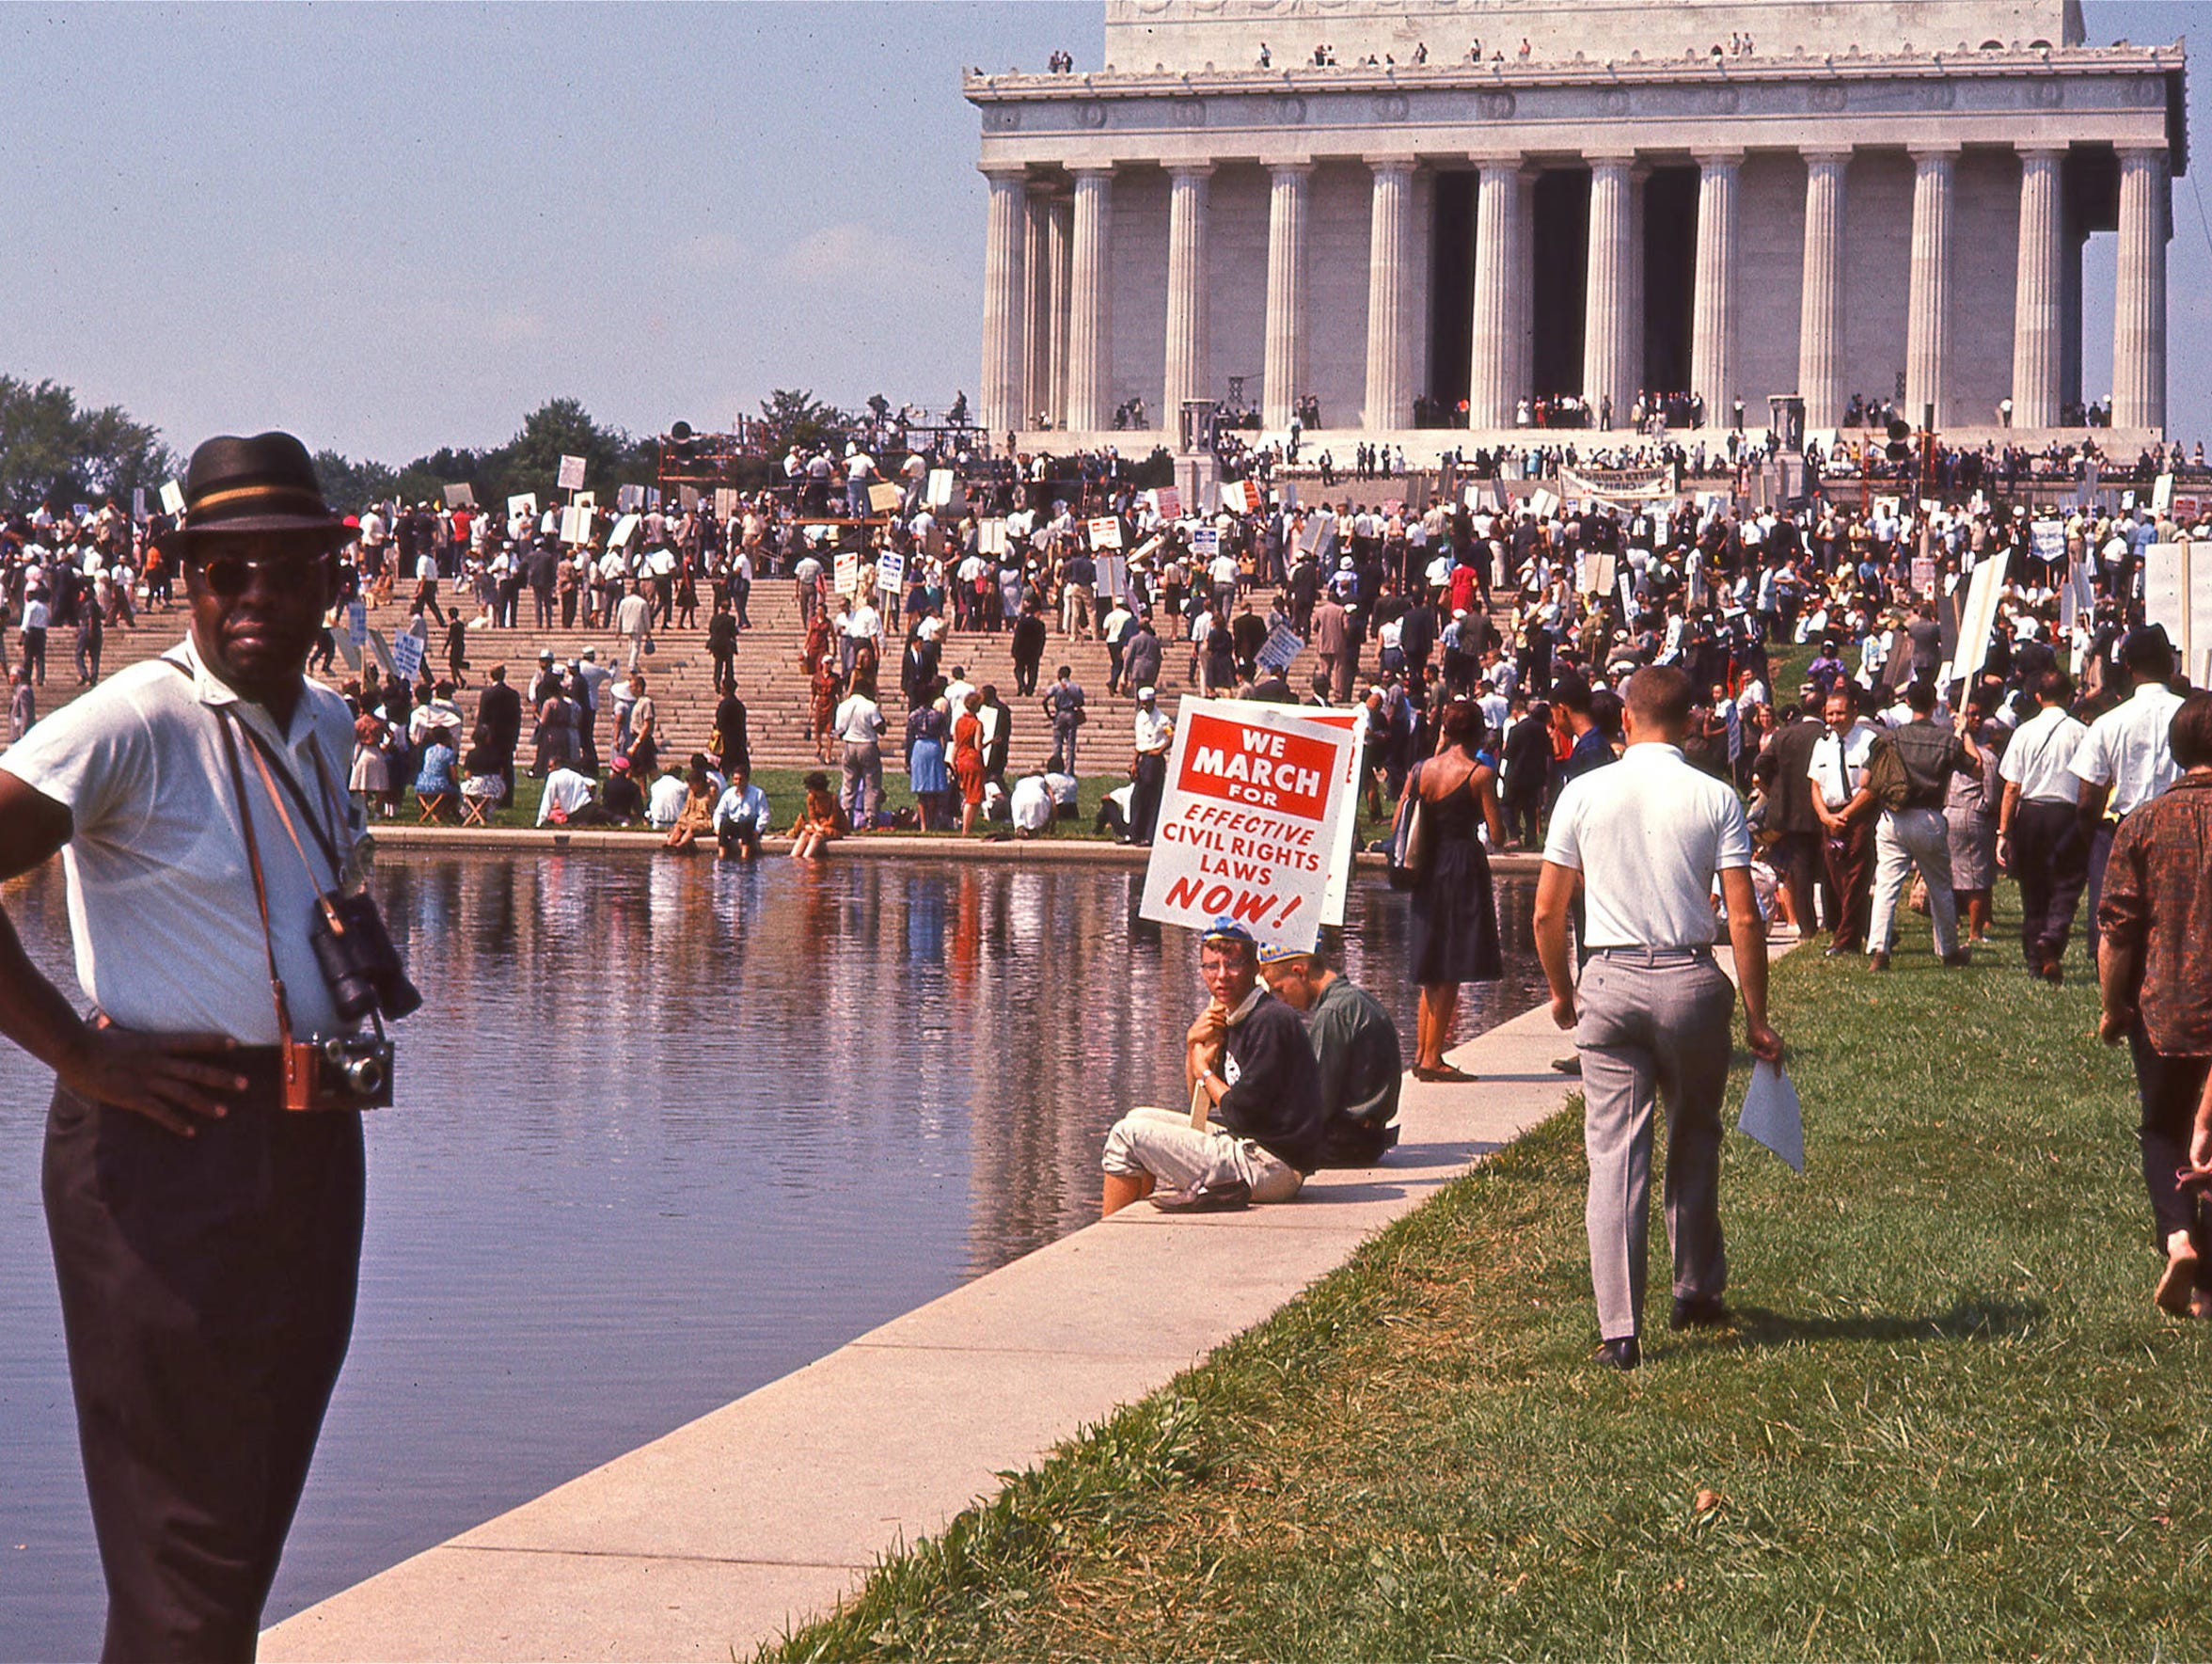 Crowd gathering at the Lincoln Memorial for the March